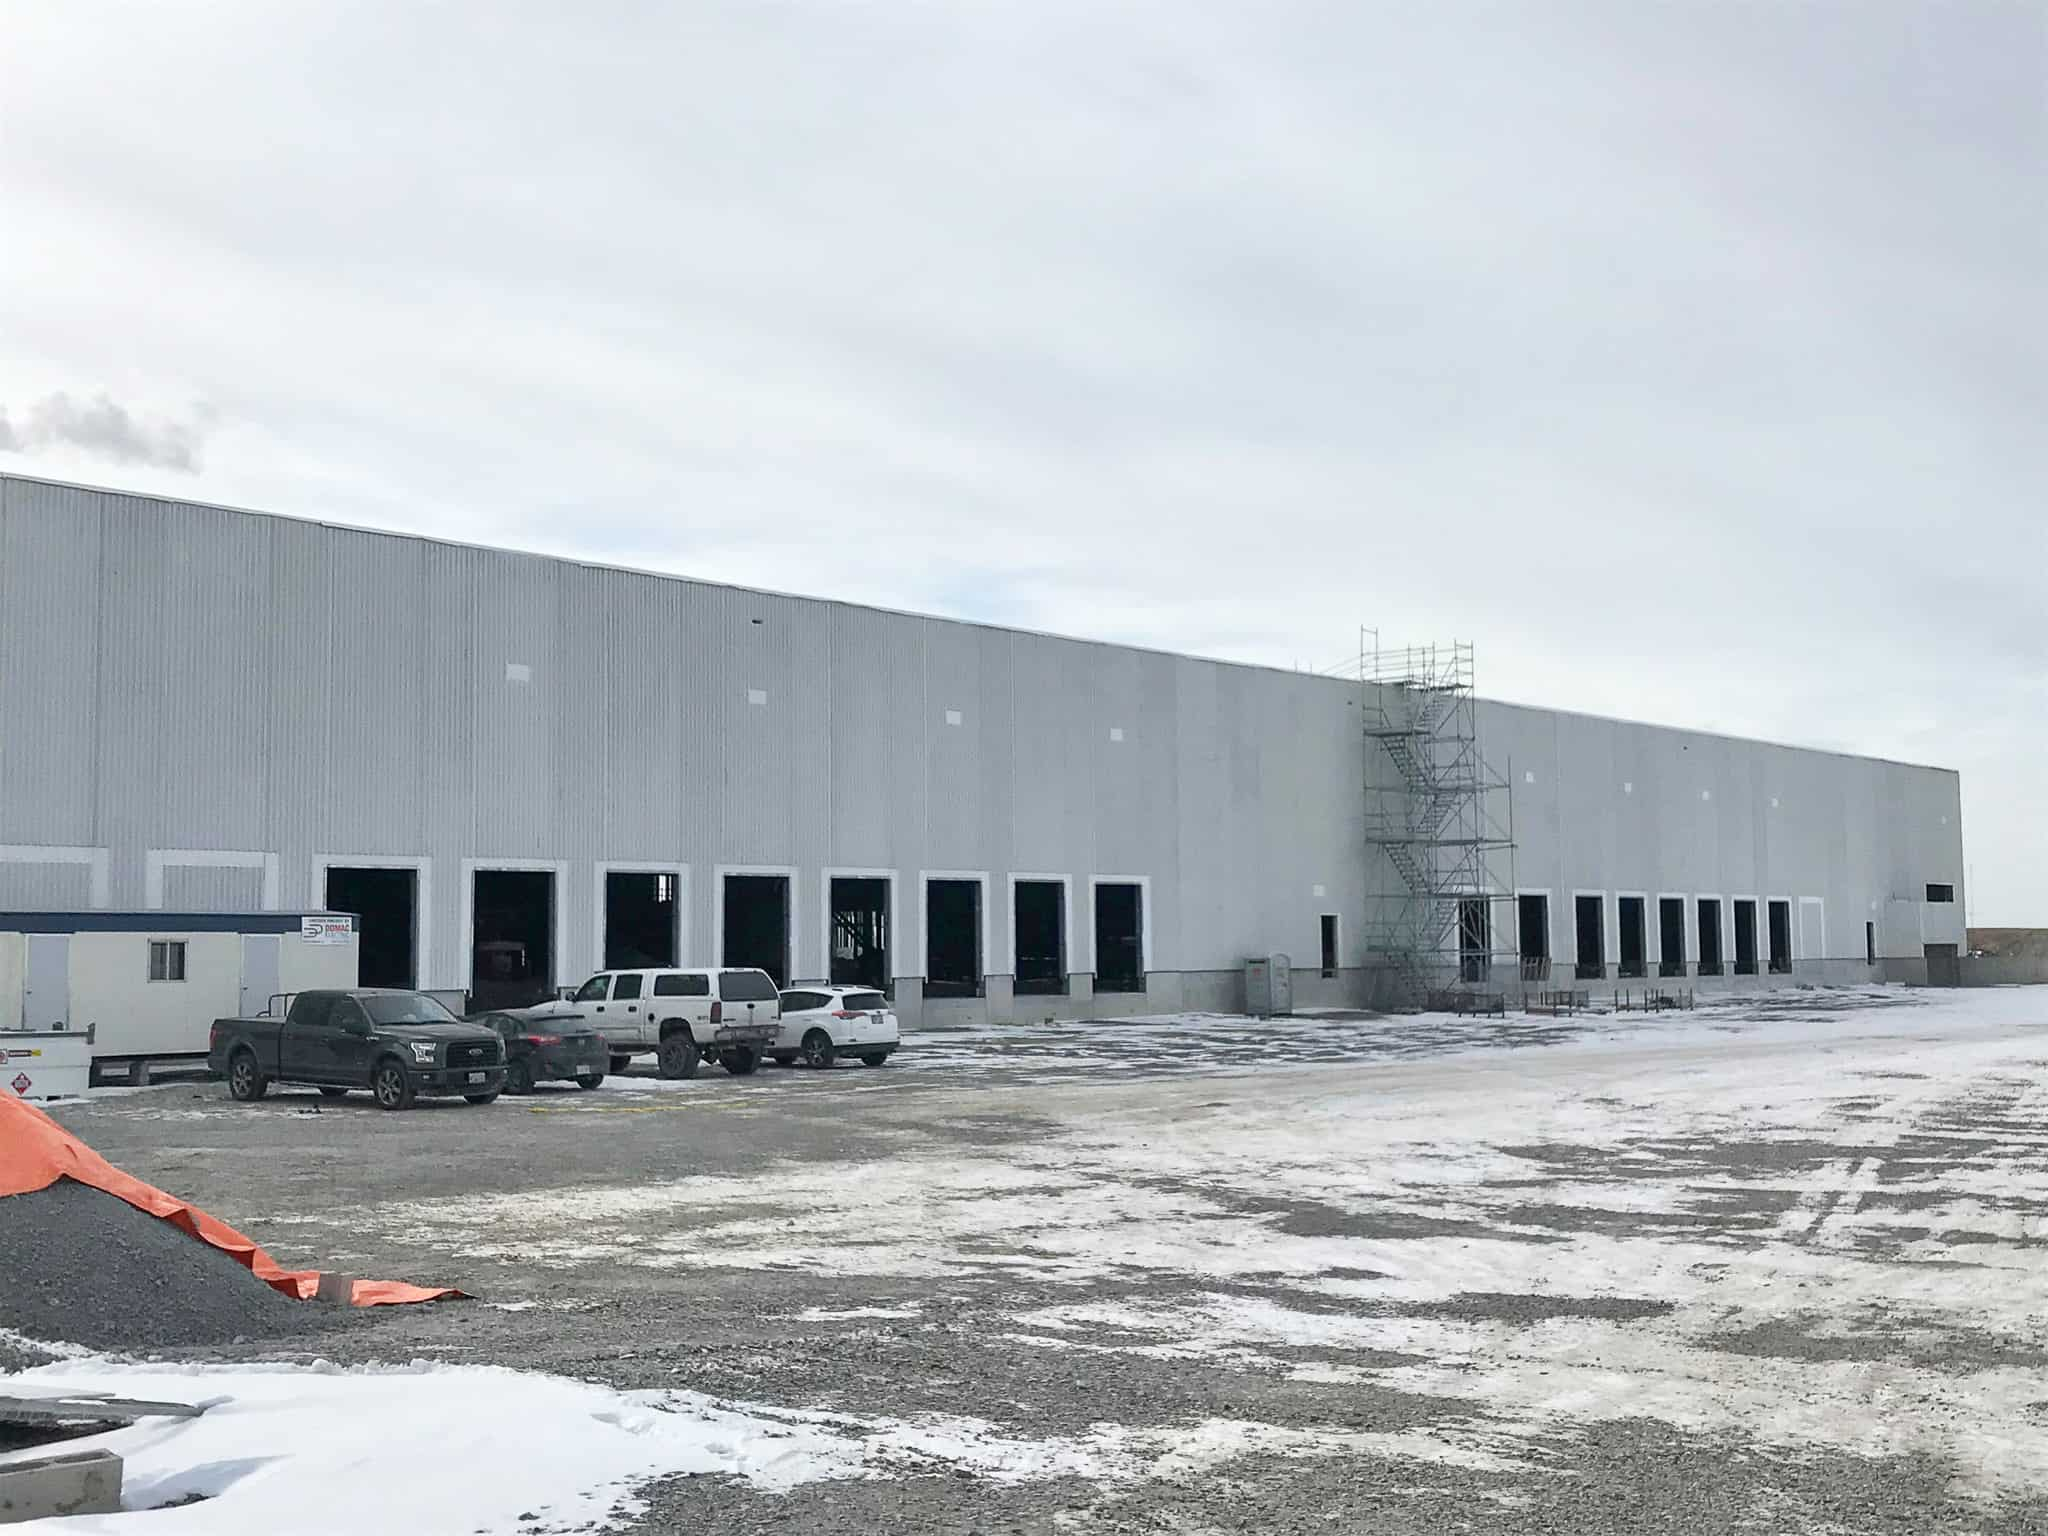 Coming soon: National headquarters for East Penn's battery distribution and warehouse facility